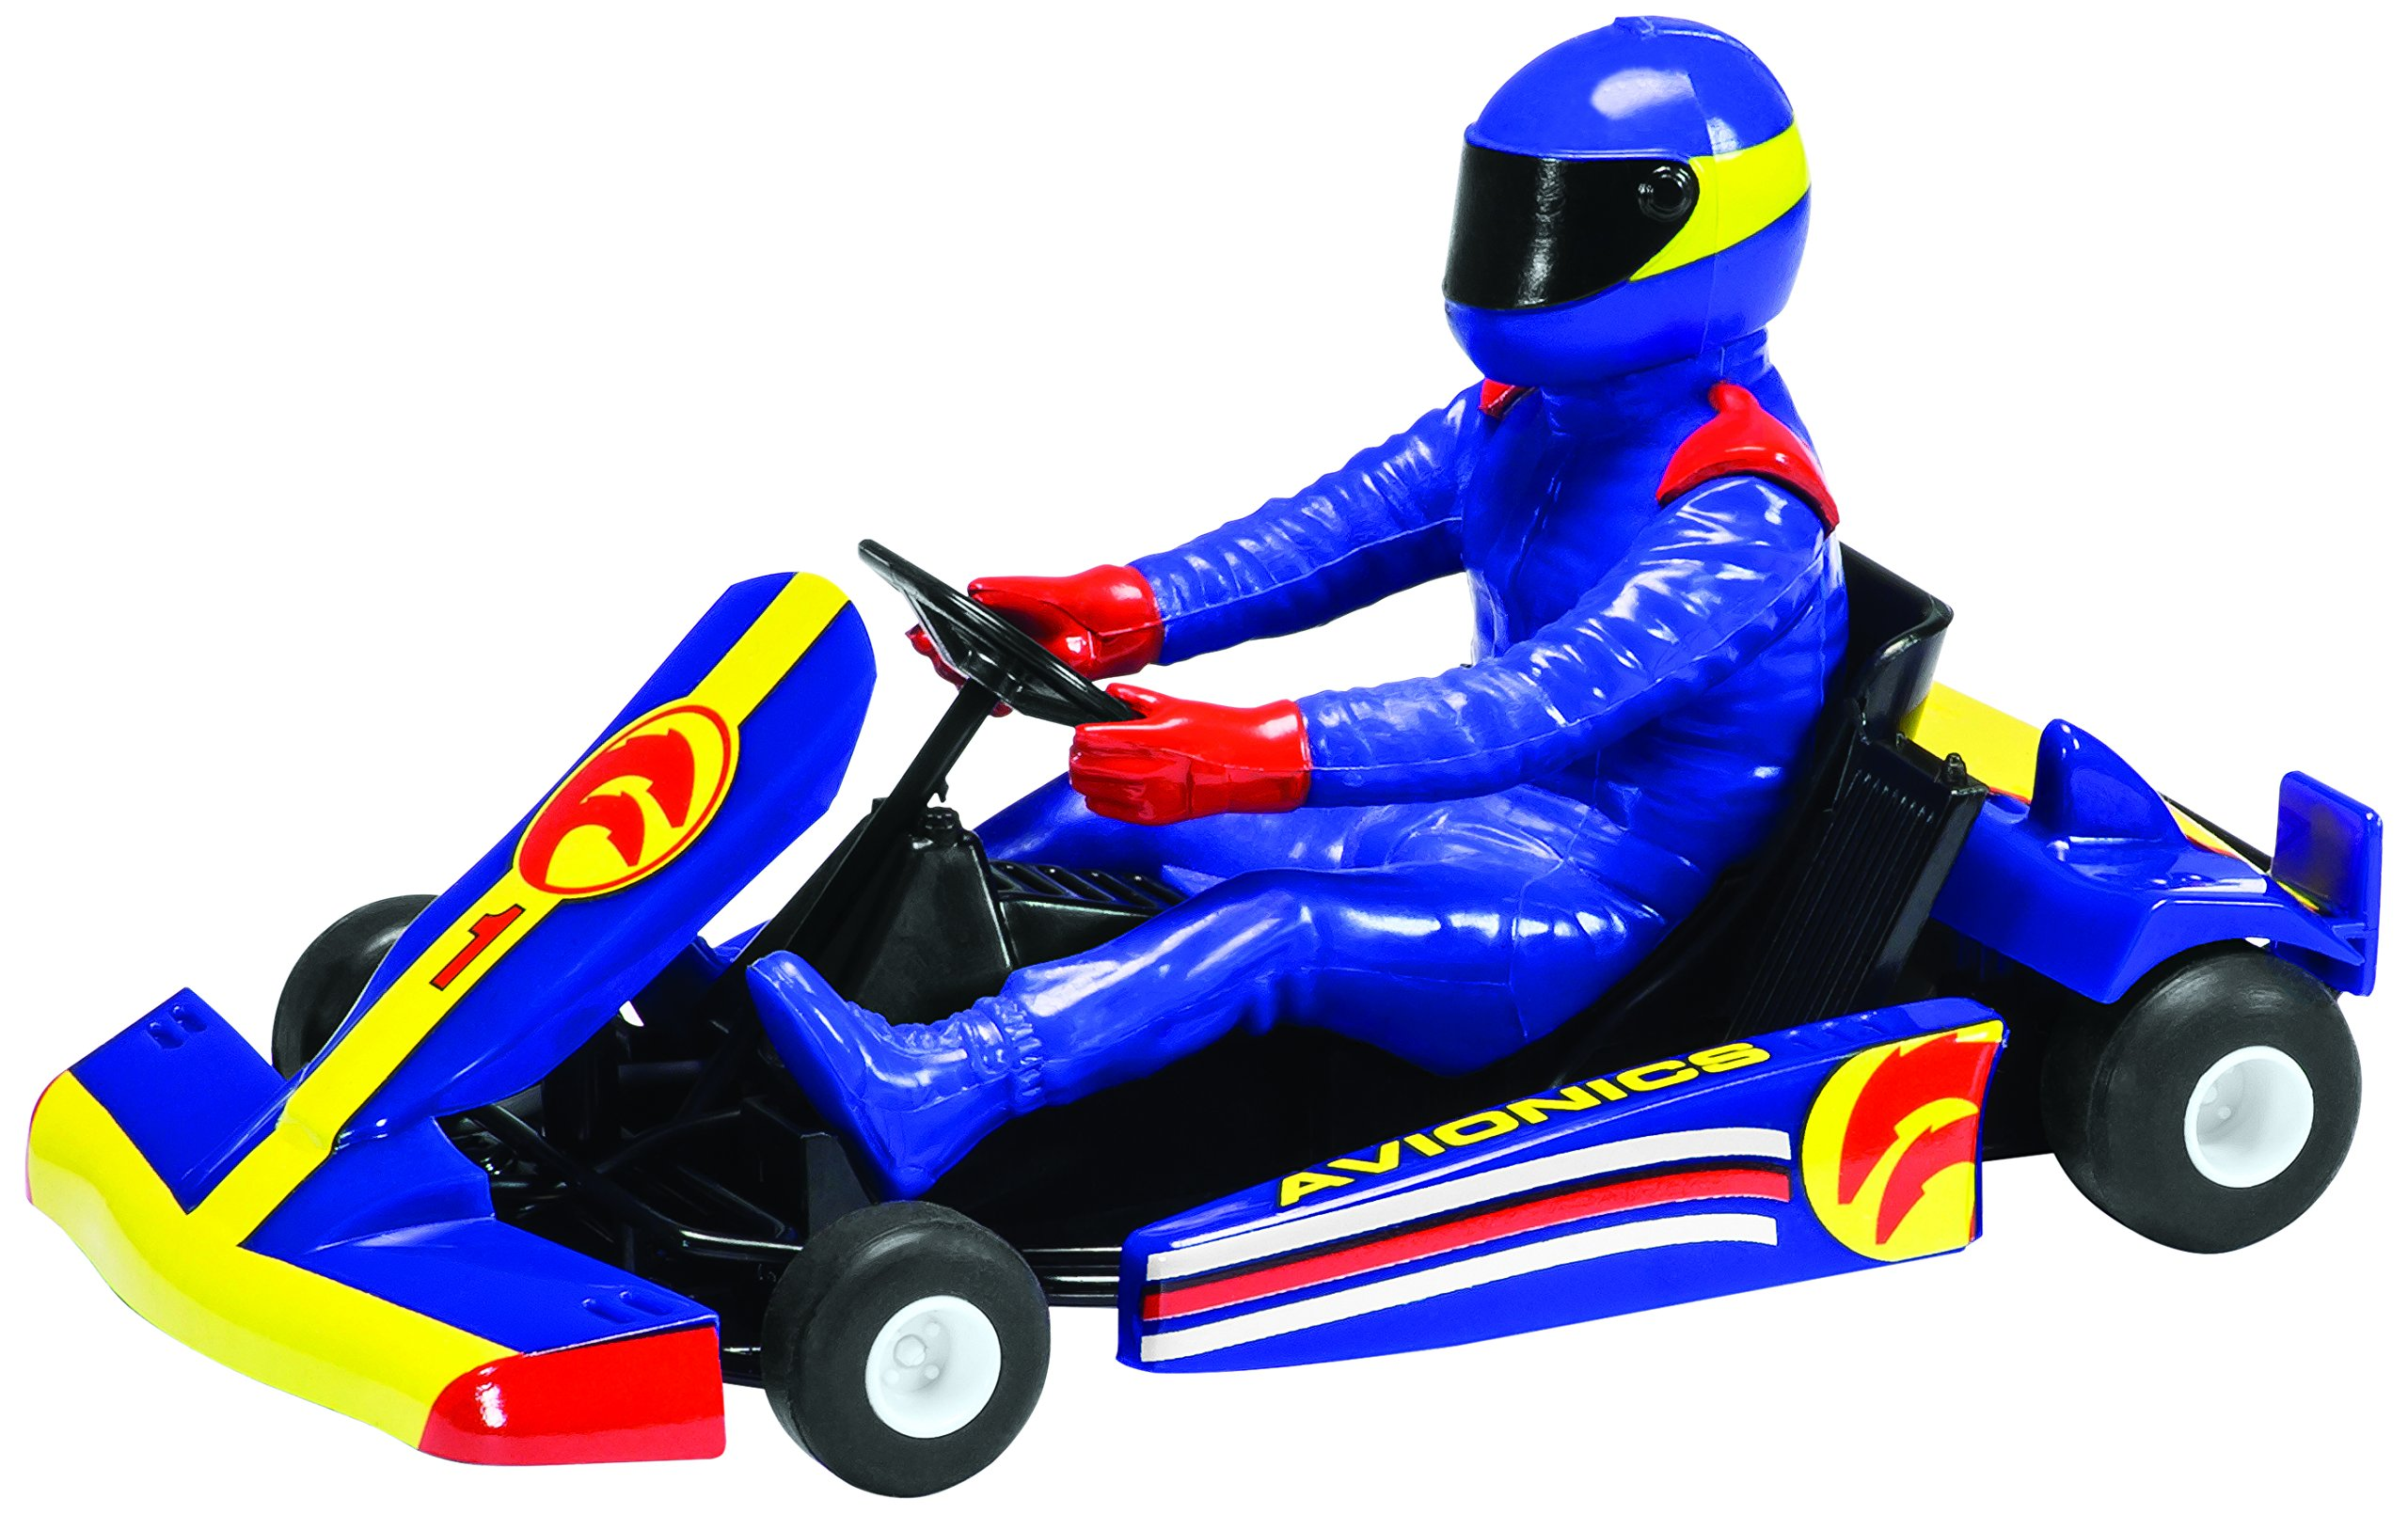 Scalextric Super Kart 2 Blue #1 1:32nd Scale Slot Car